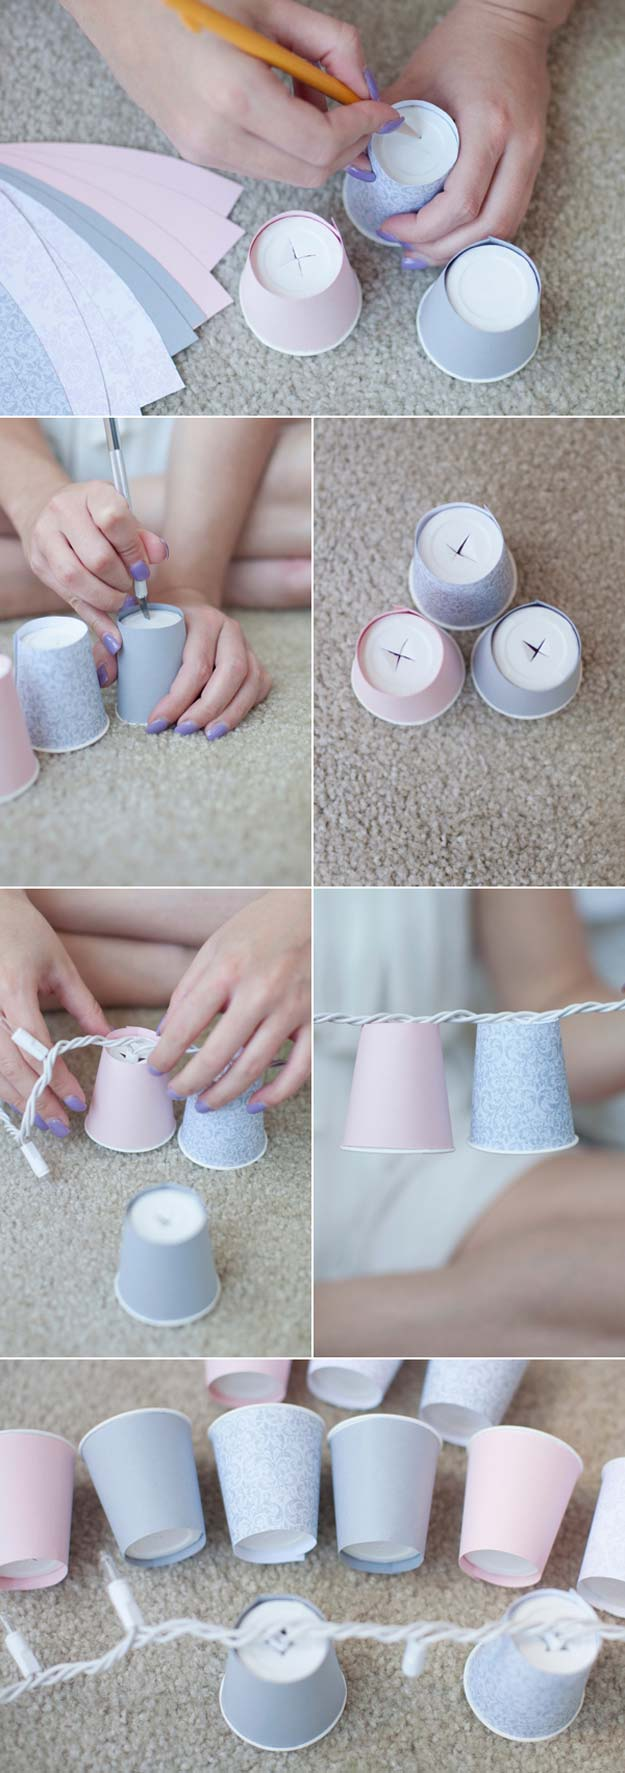 DIY Dorm Room Decor Ideas - Dixie Cup Garland - Cheap DIY Dorm Decor Projects for College Rooms - Cool Crafts, Wall Art, Easy Organization for Girls - Fun DYI Tutorials for Teens and College Students #diyideas #roomdecor #diy #collegelife #teencrafts